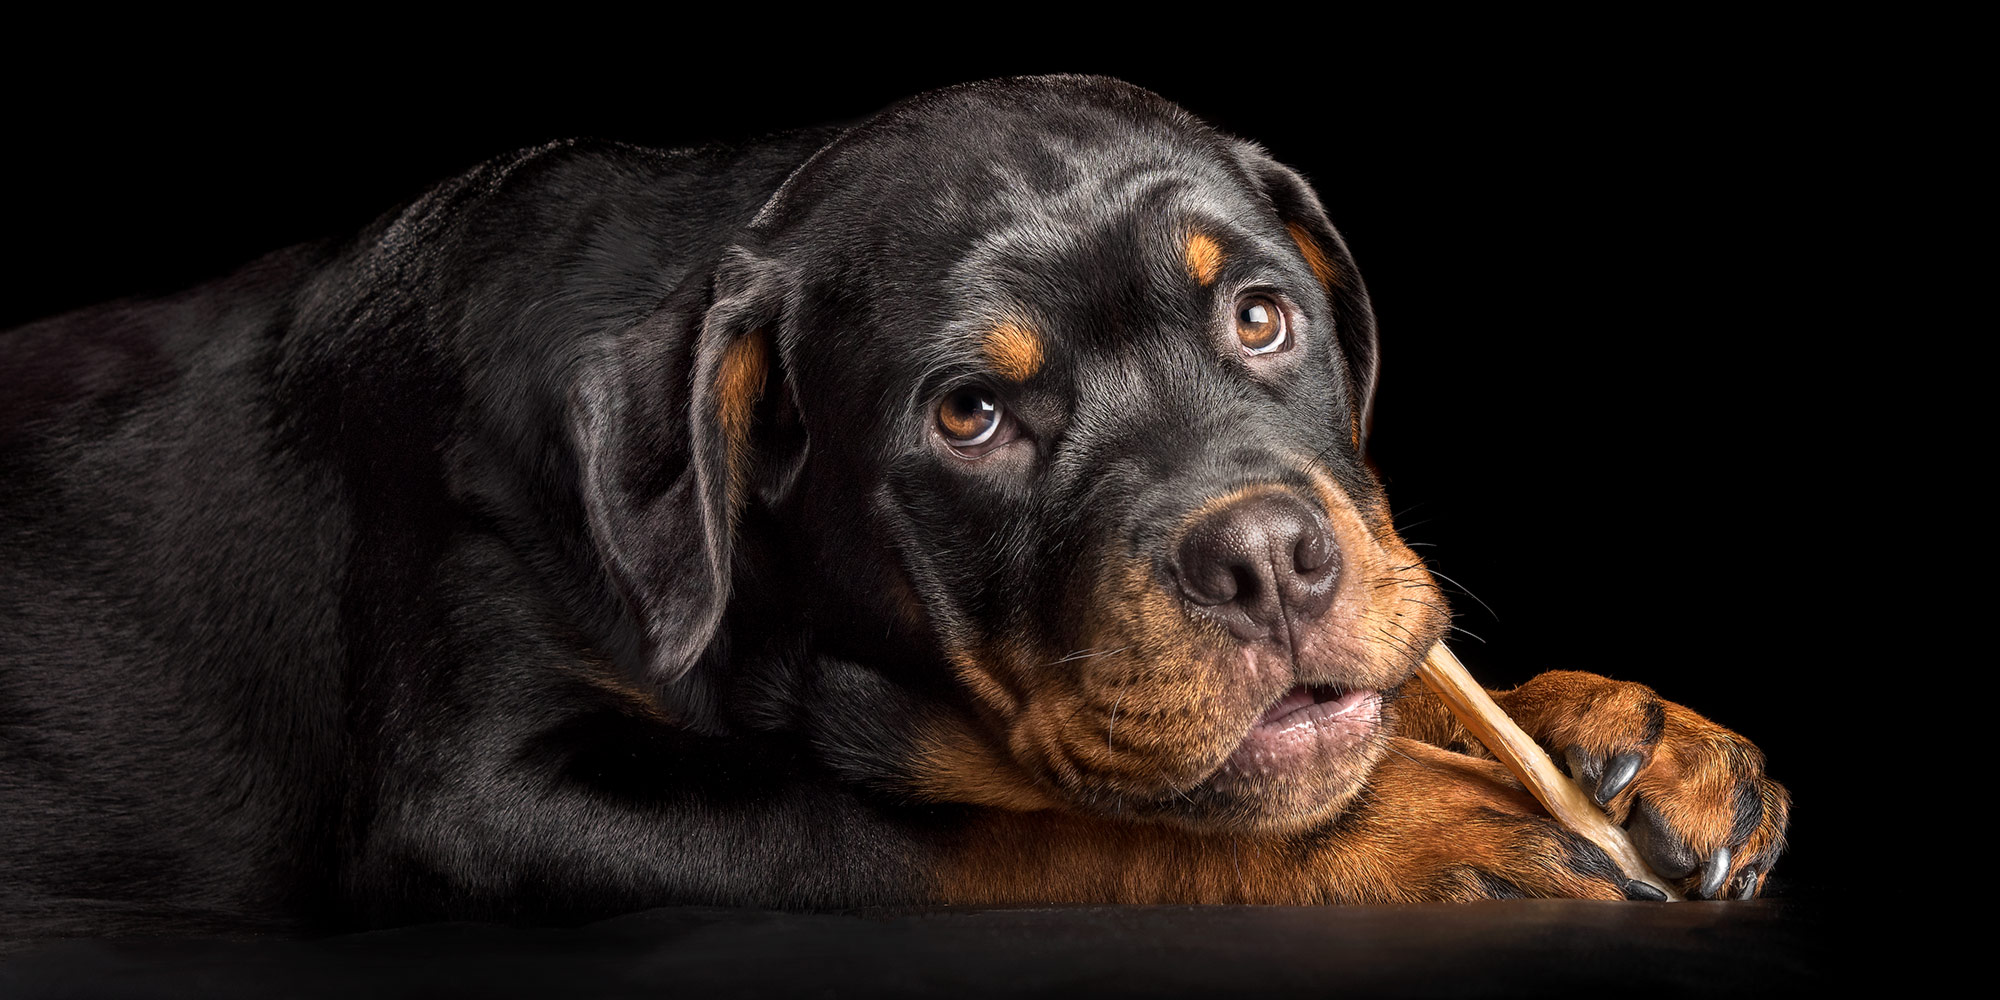 angelic faced rottweiler pup chewing on beef hide stick